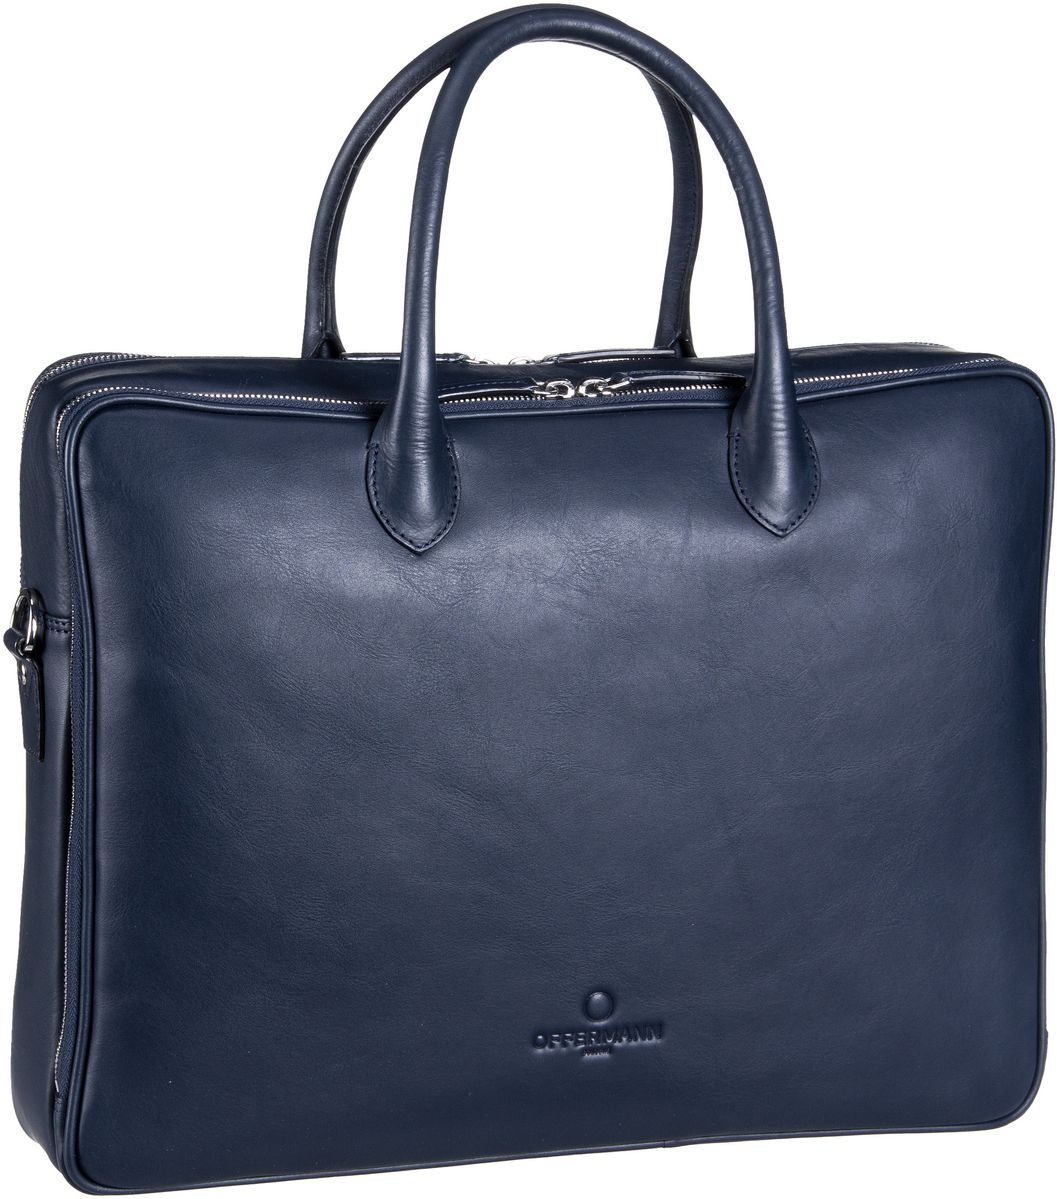 Offermann Workbag Slim Tender Universe Blue Aktentasche